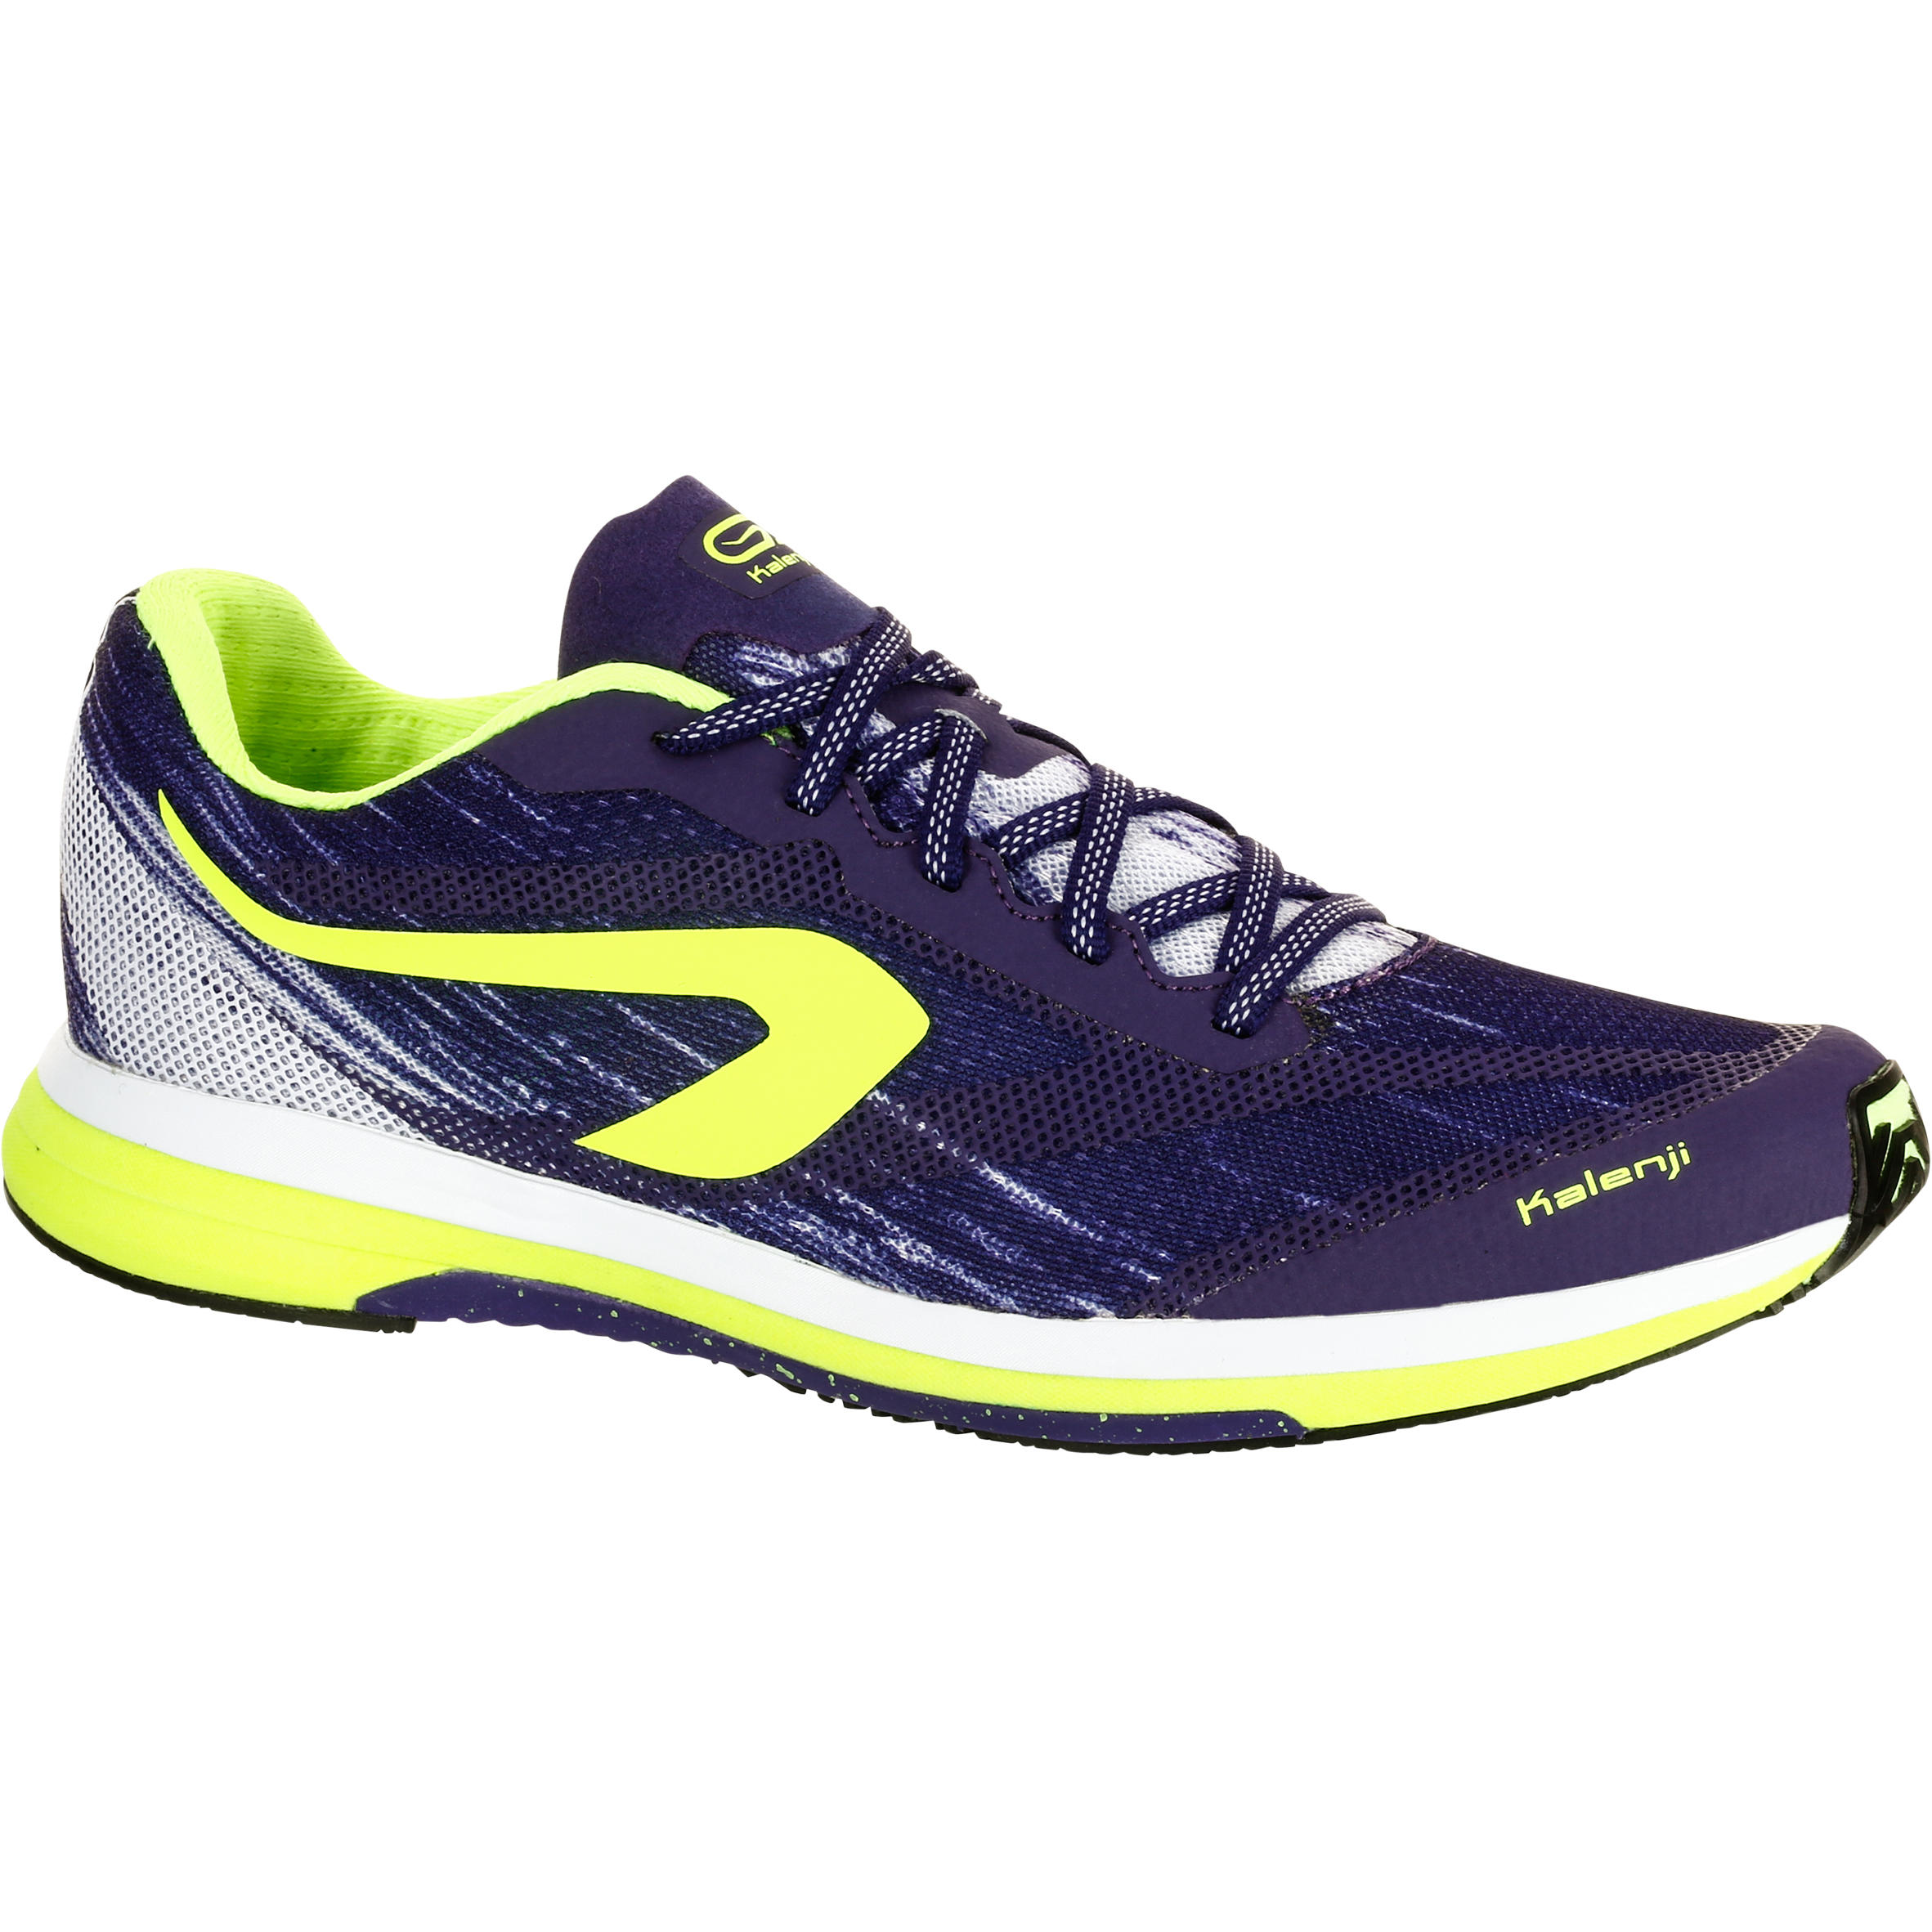 KIPRUN RACE KALENJI WOMEN'S SHOE PURPLE YELLOW